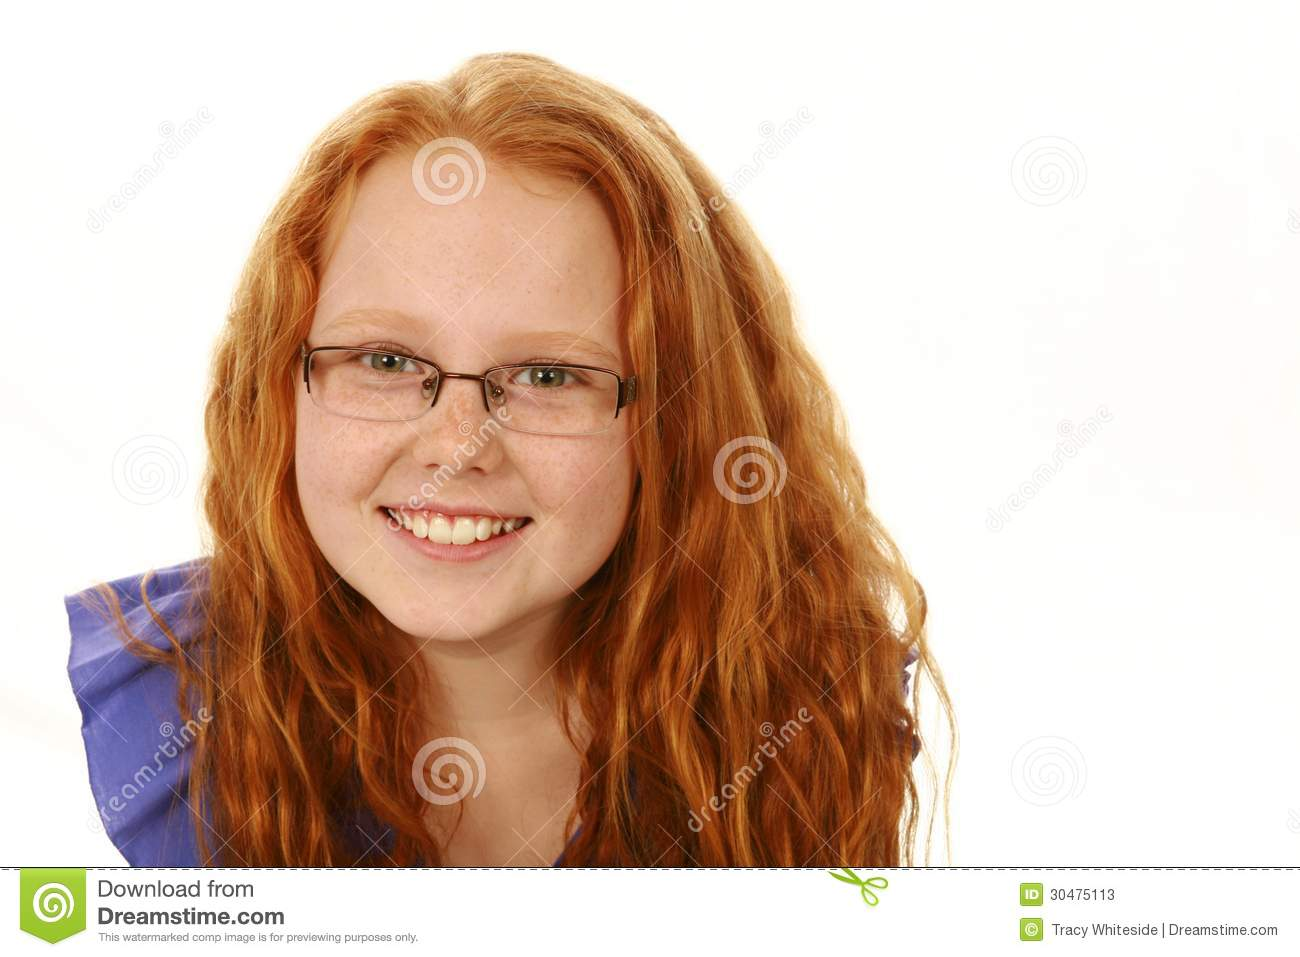 Freckles glasses brunette